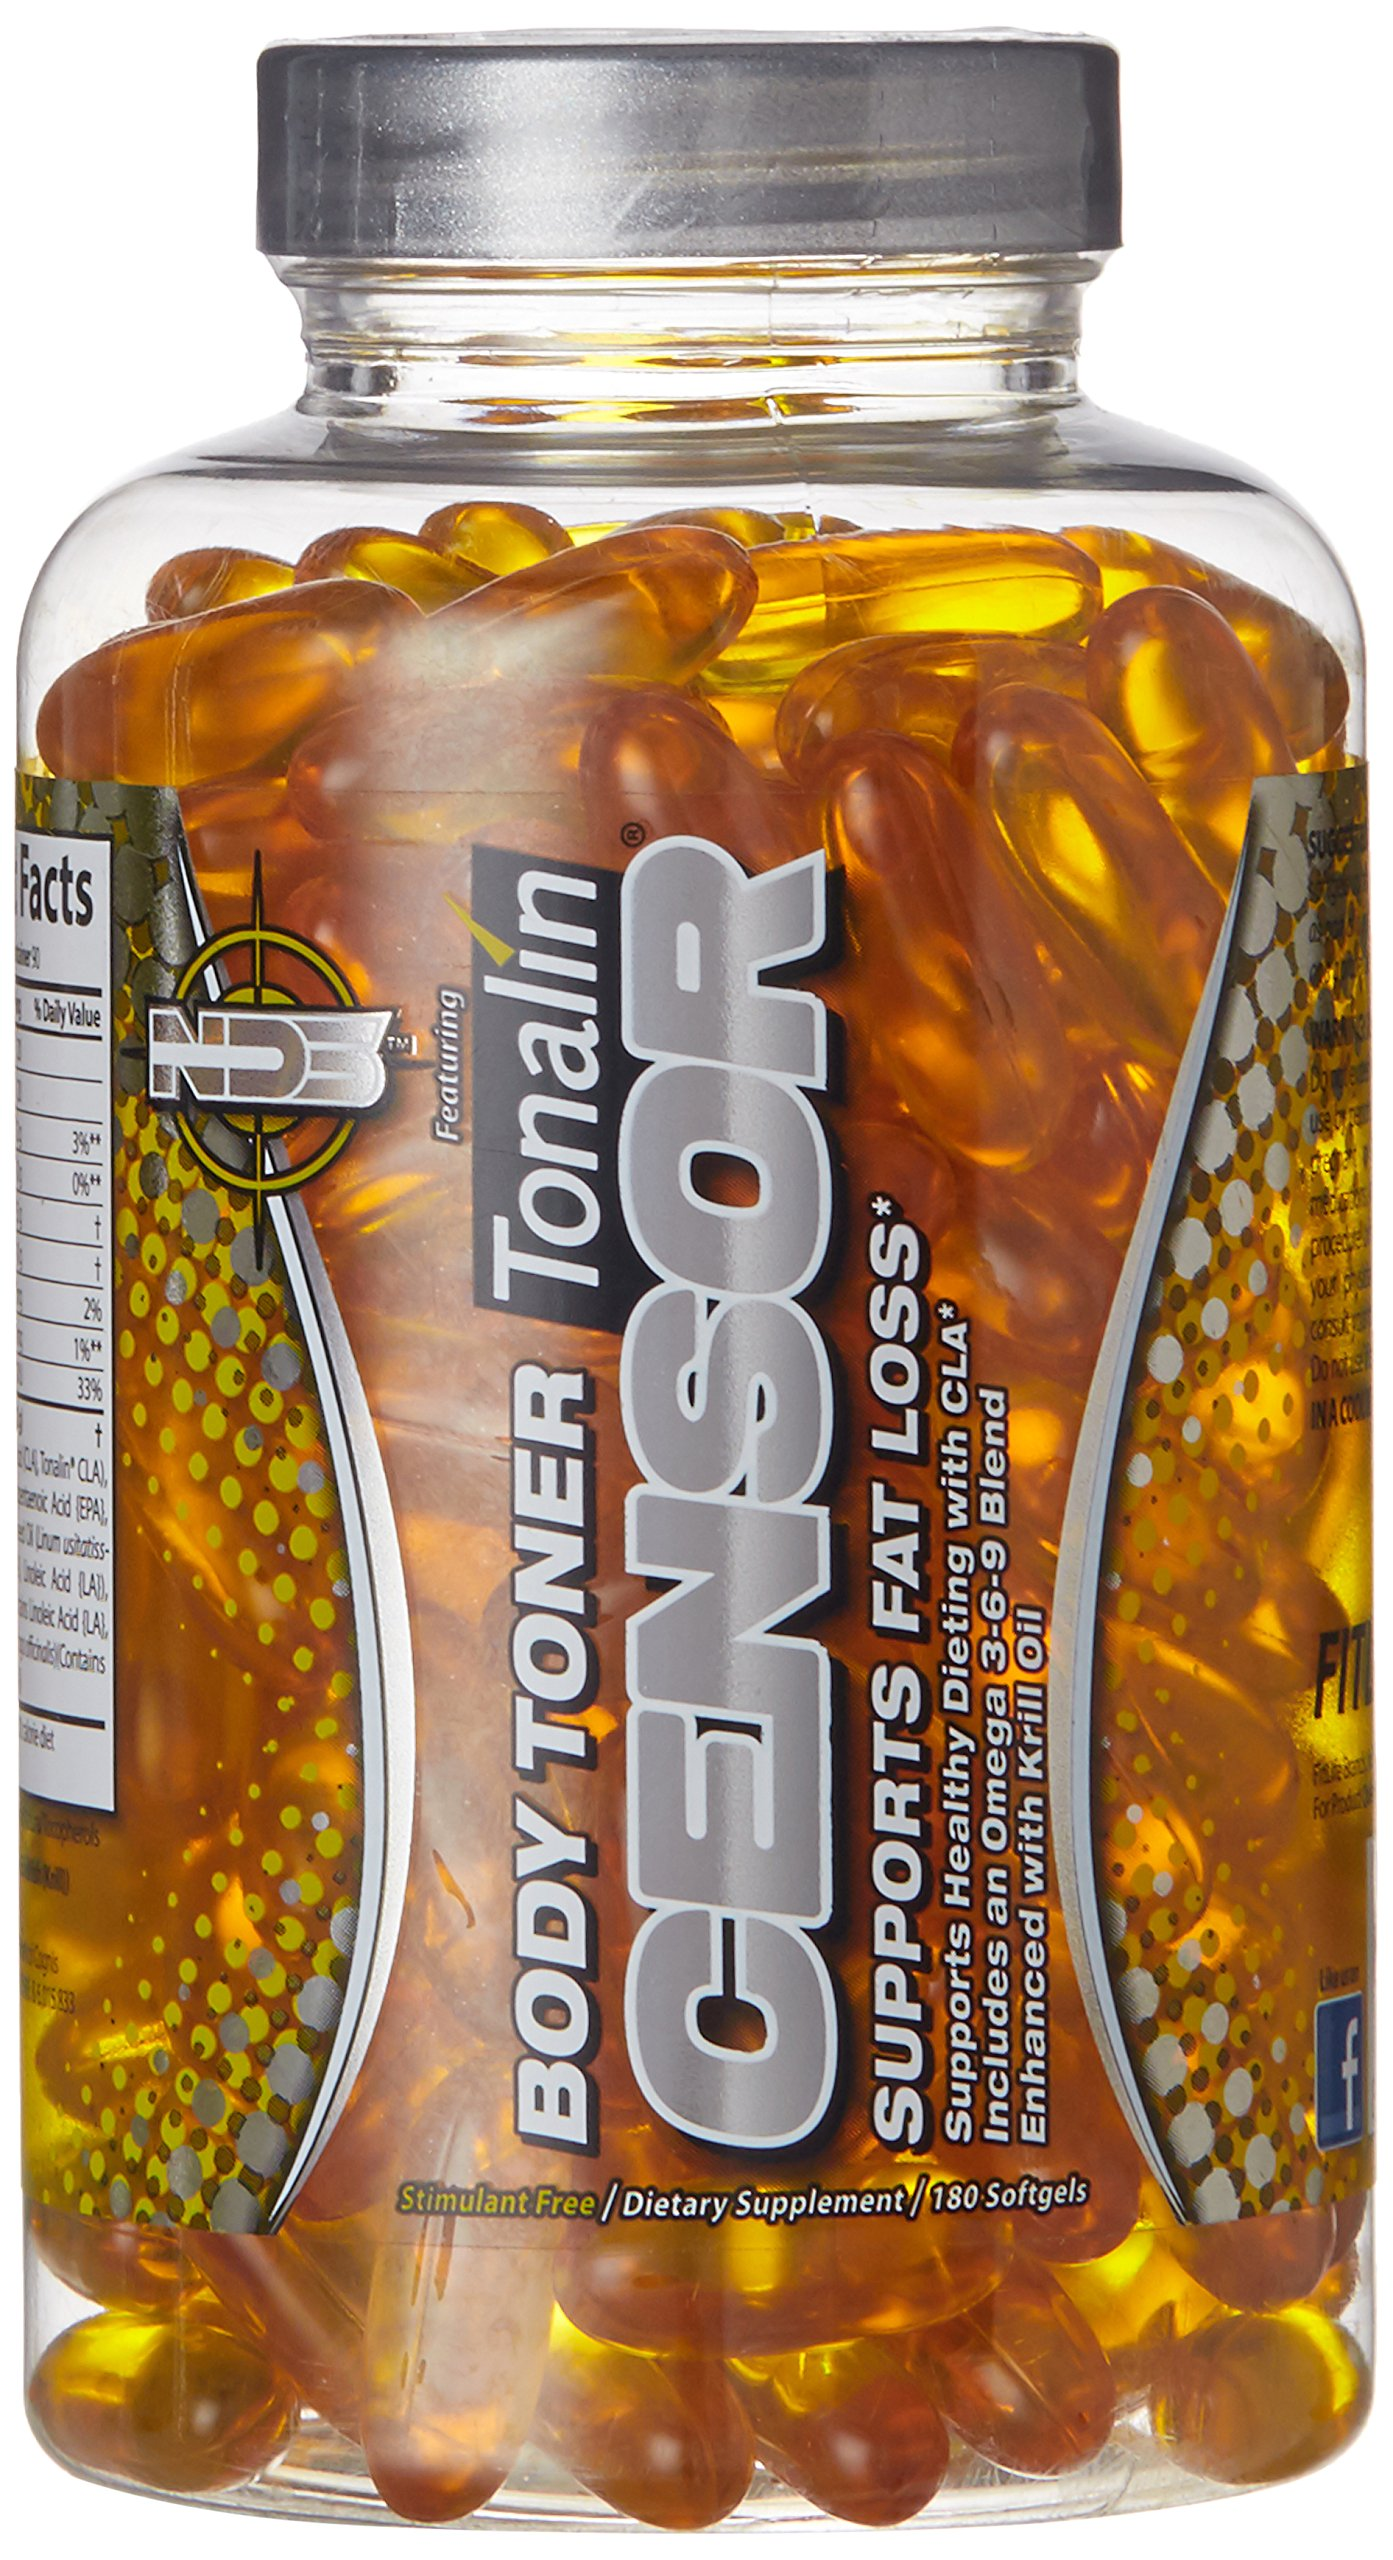 NDS Nutrition CENSOR Specialized Body Toning Supplement for Losing Inches - 180 Softgels